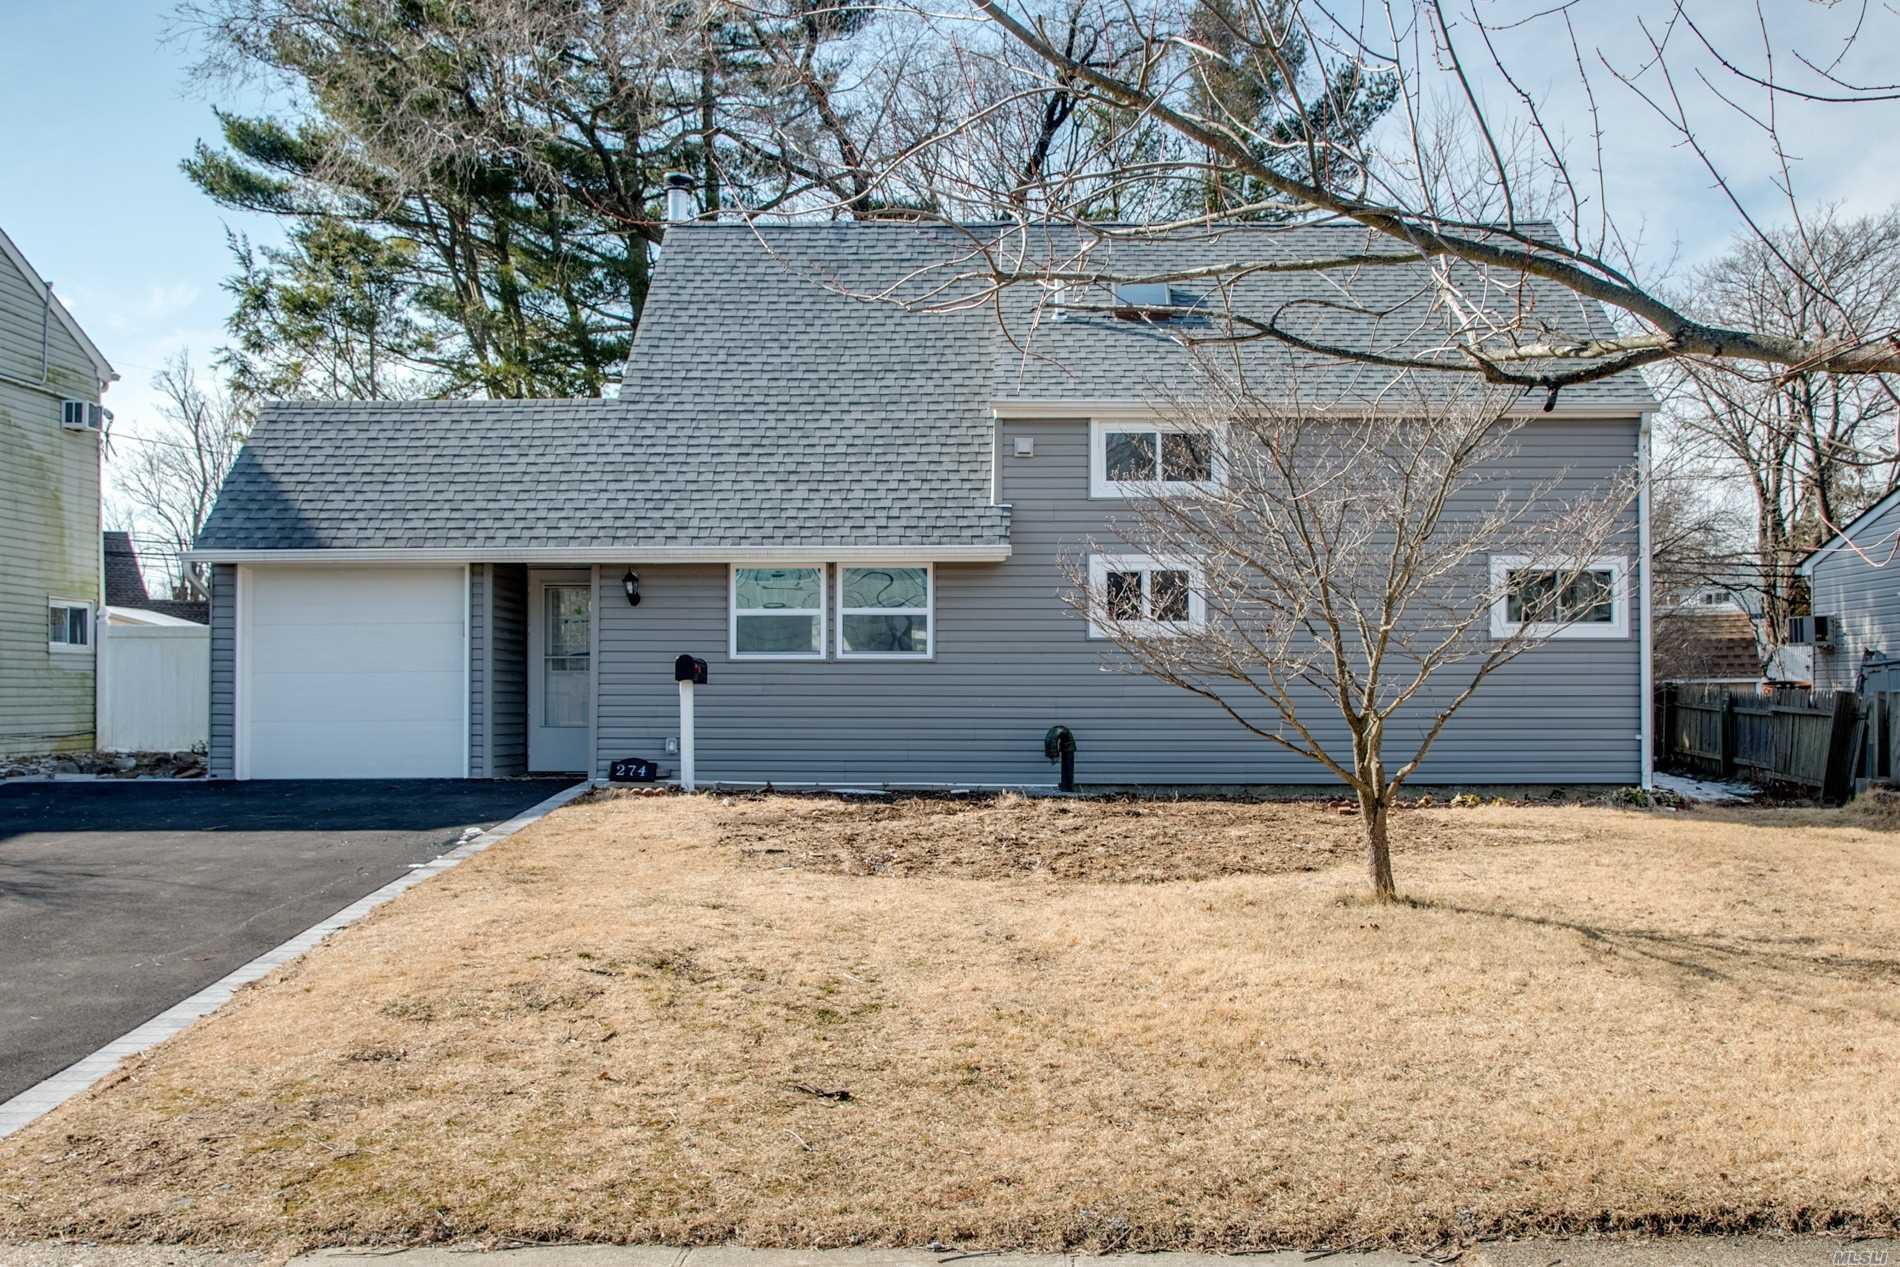 Don't Miss This 4 Bedroom 2 Bath Ranch On Over Sized Park Like Property. House Features New Eat In Kitchen, Two New Bathrooms, New Siding And Windows. New Burner...Too Much To List!